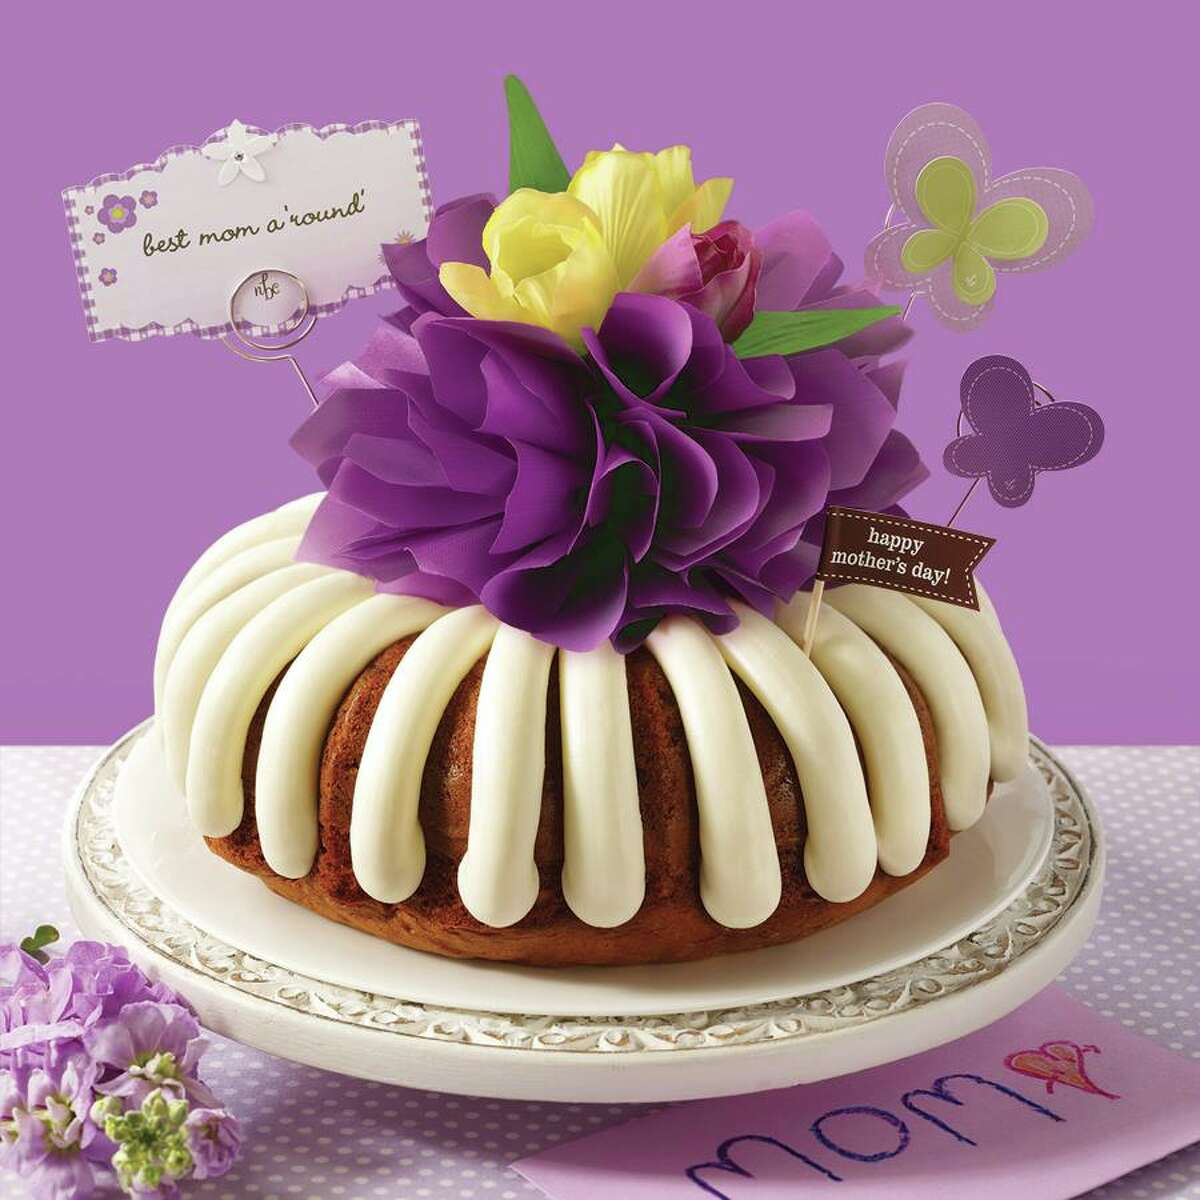 Best bakery 3. Nothing Bundt Cakes 110 Wolf Rd Unit 2, Albany | Website